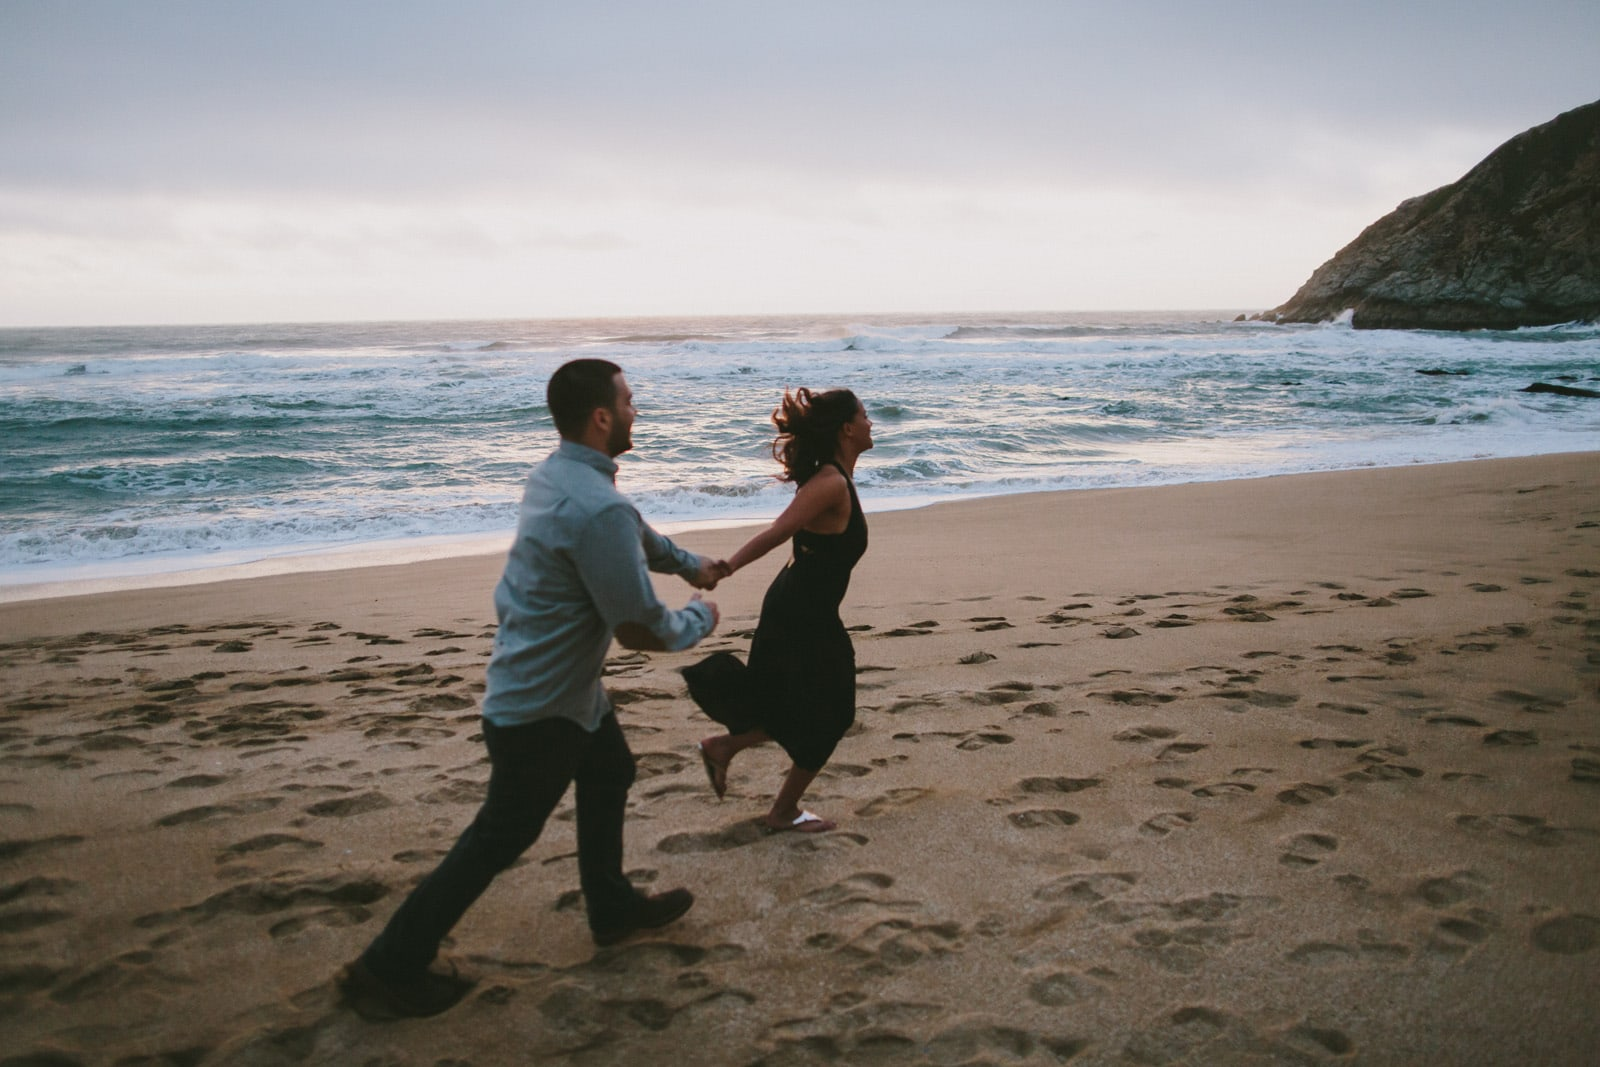 San_Francisco_Engagment_Session_Beach_Engagment_Session_019